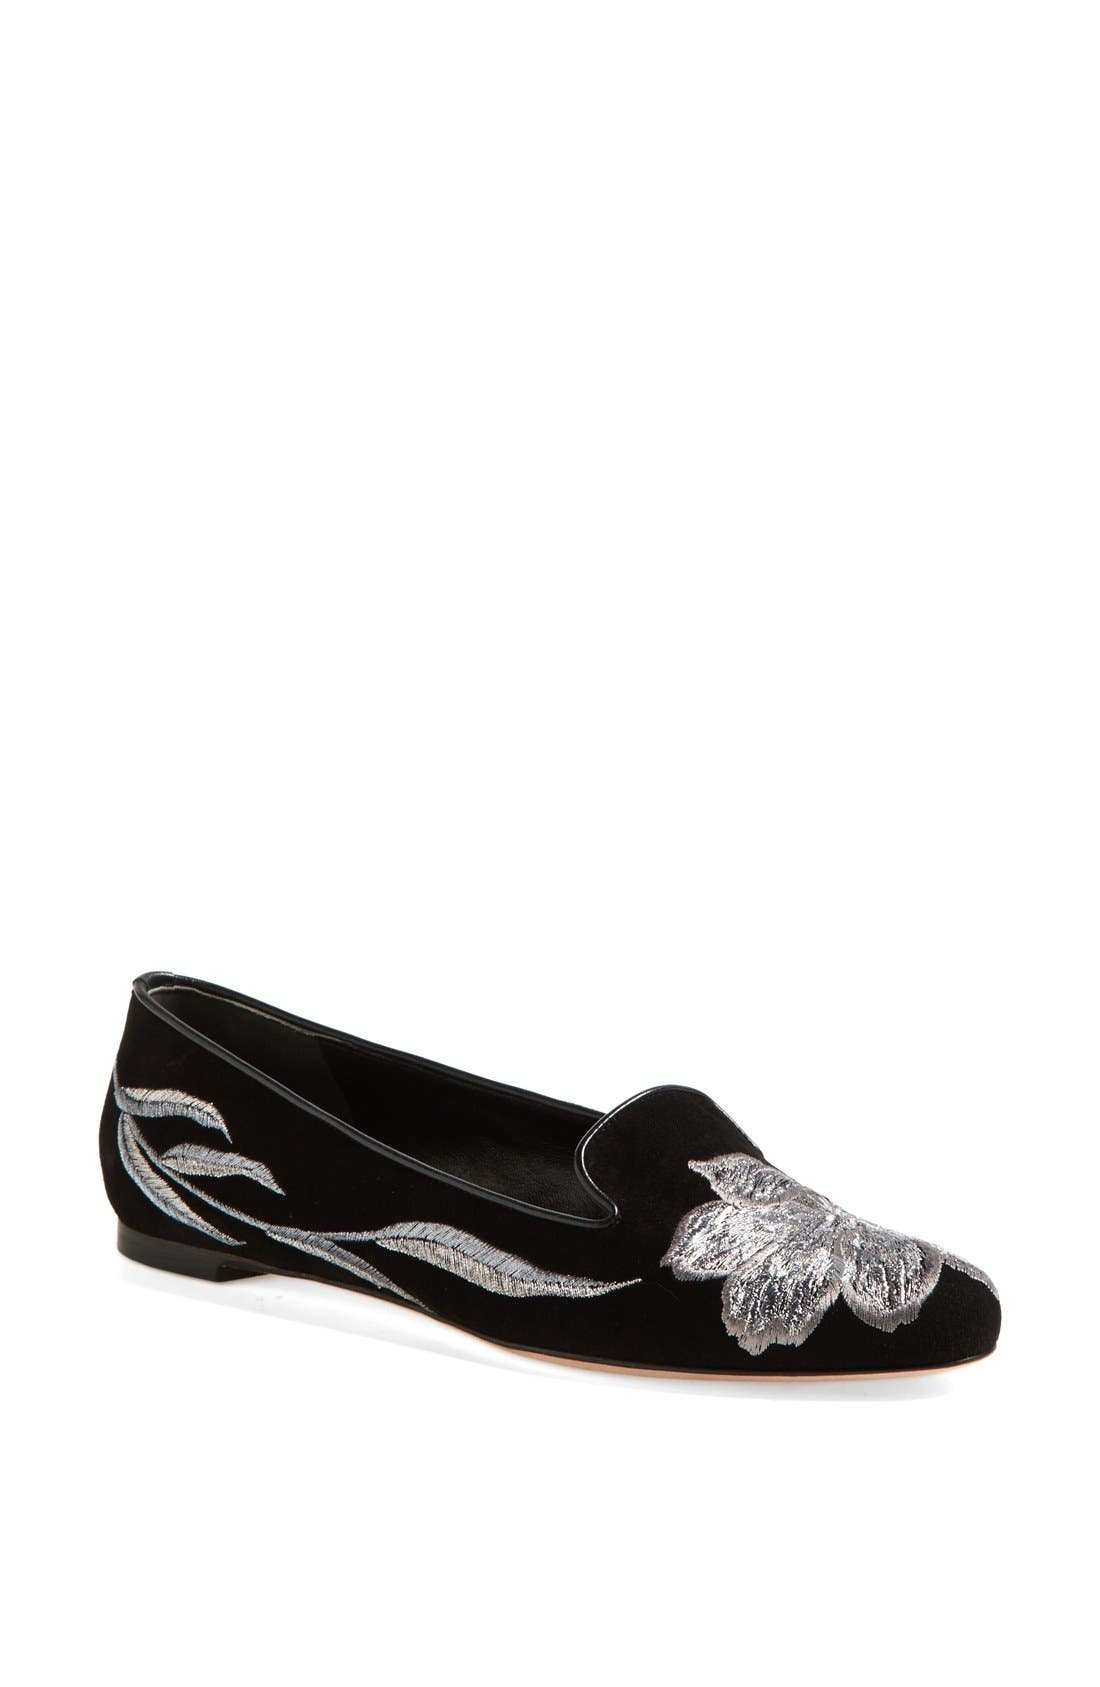 Main Image - Alexander McQueen Tulip Embroidered Suede Smoking Flat (Women)